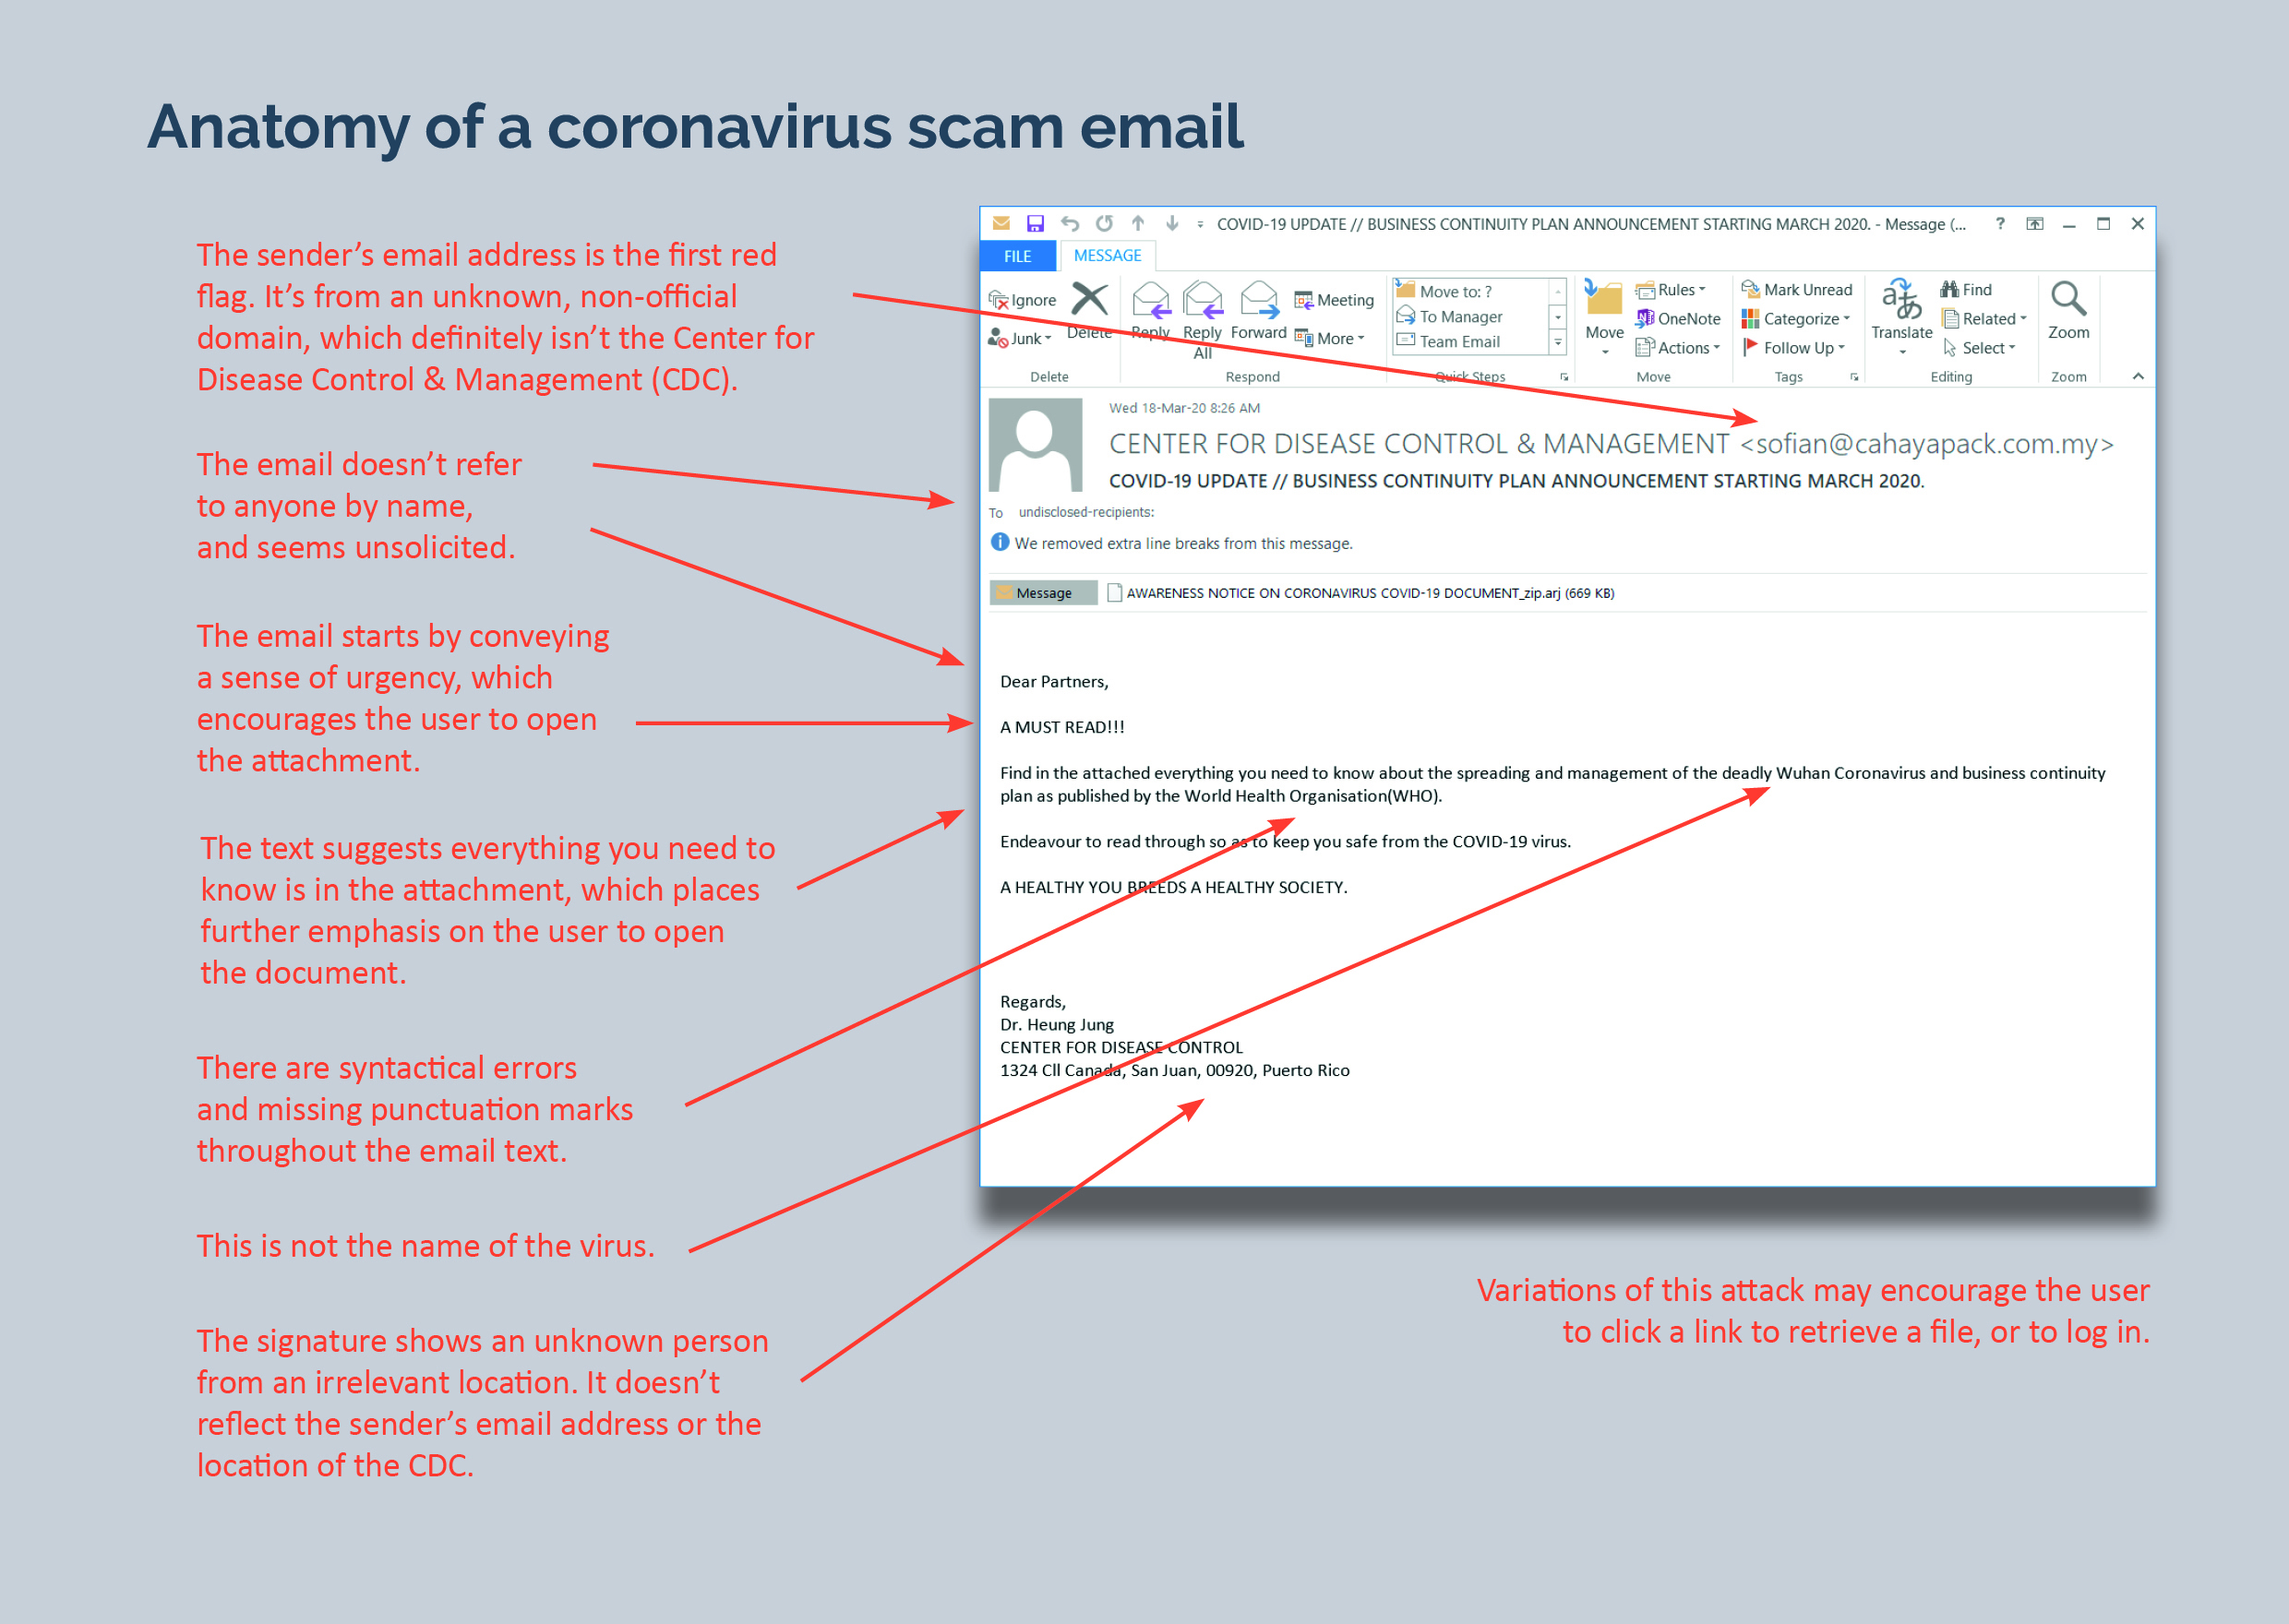 Anatomy of a coronavirus scam email